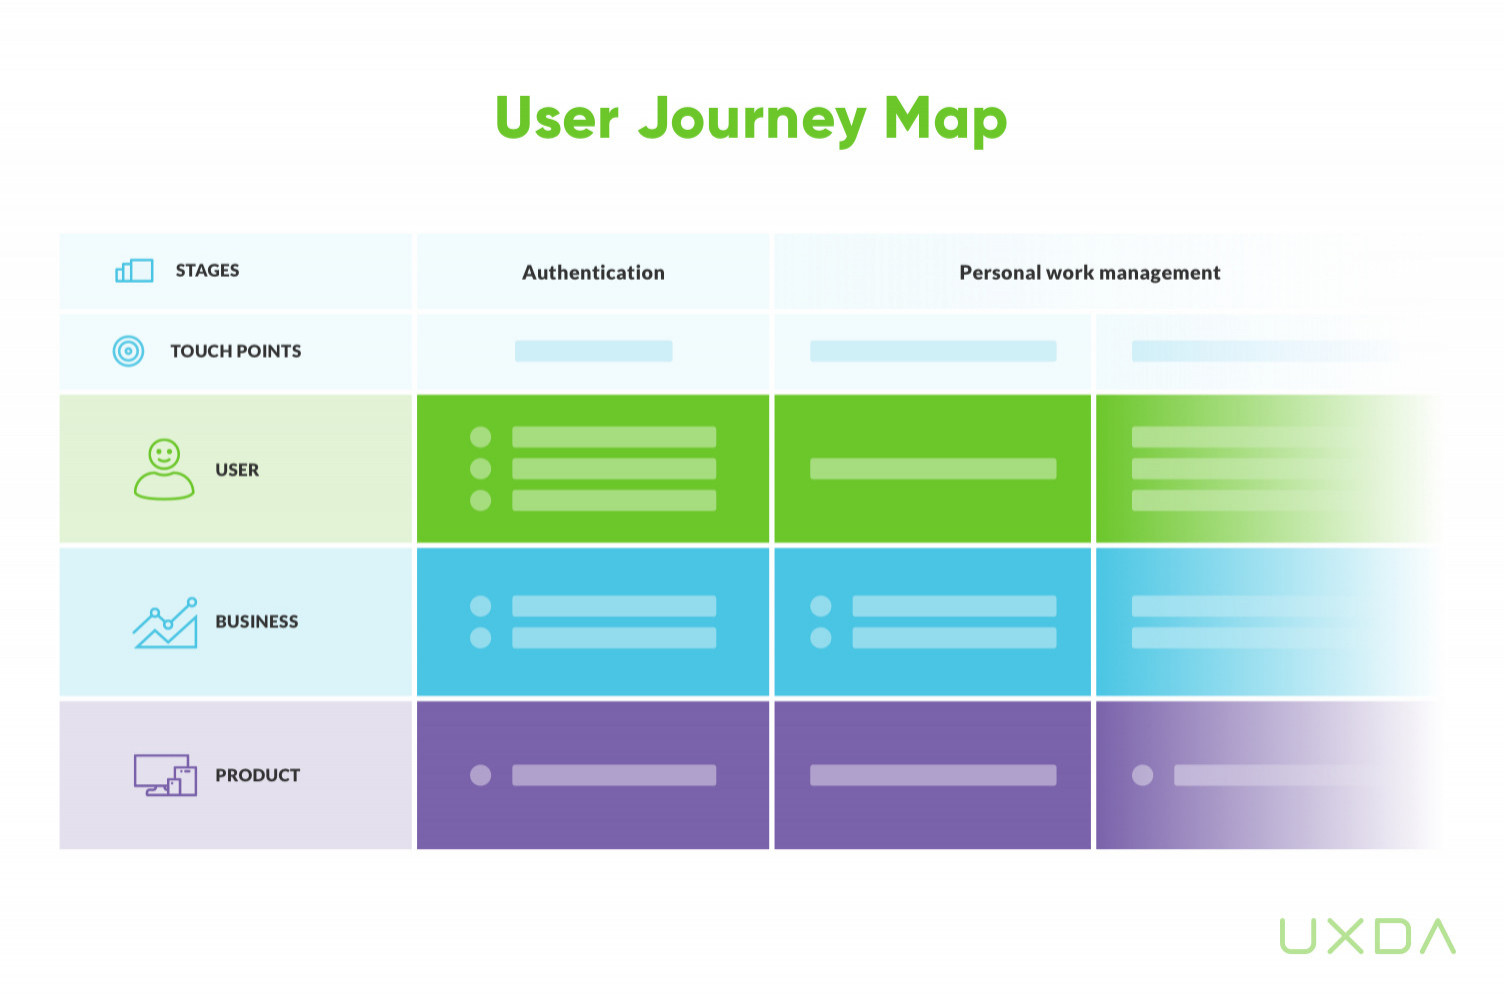 user-journey-mapping-uxda-work-process-ux-design.jpg-m-1__1504.jpg